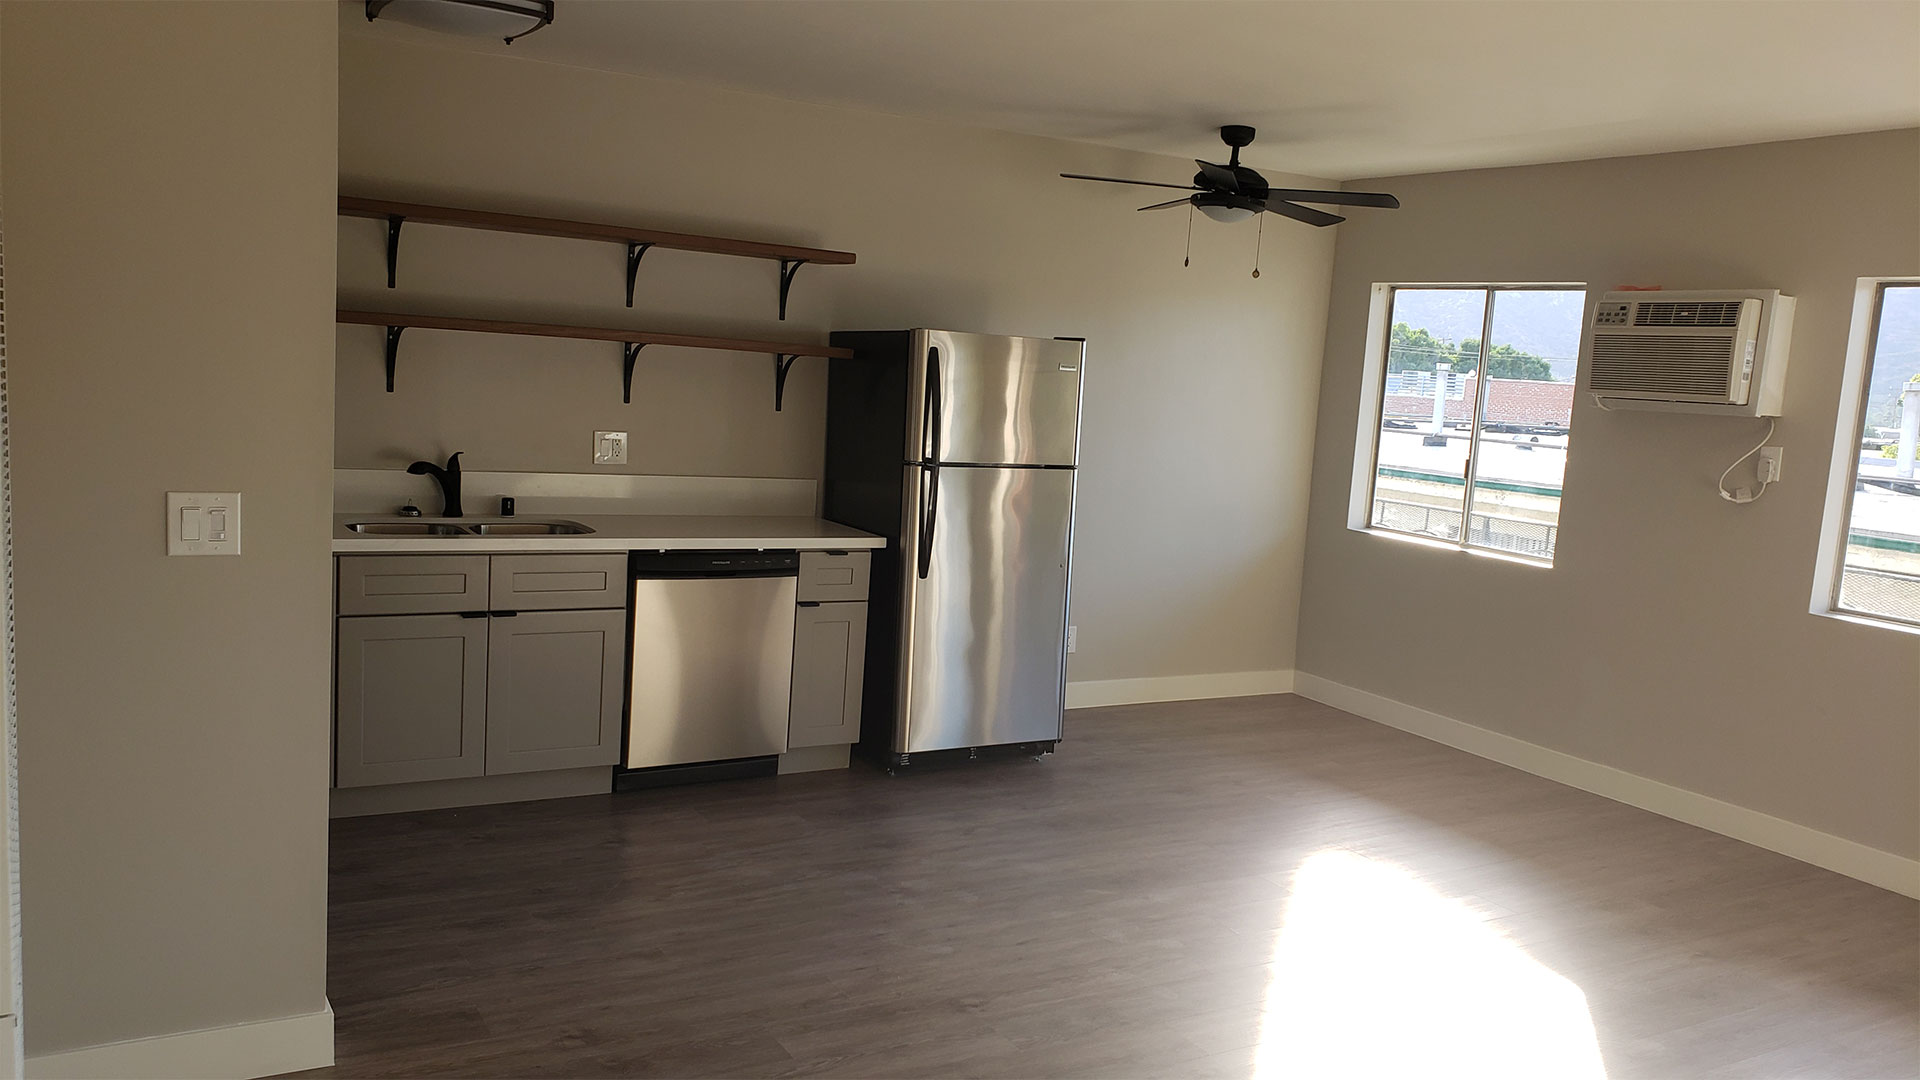 Living and Dining Room Area at Wilson Apartments in Glendale, CA